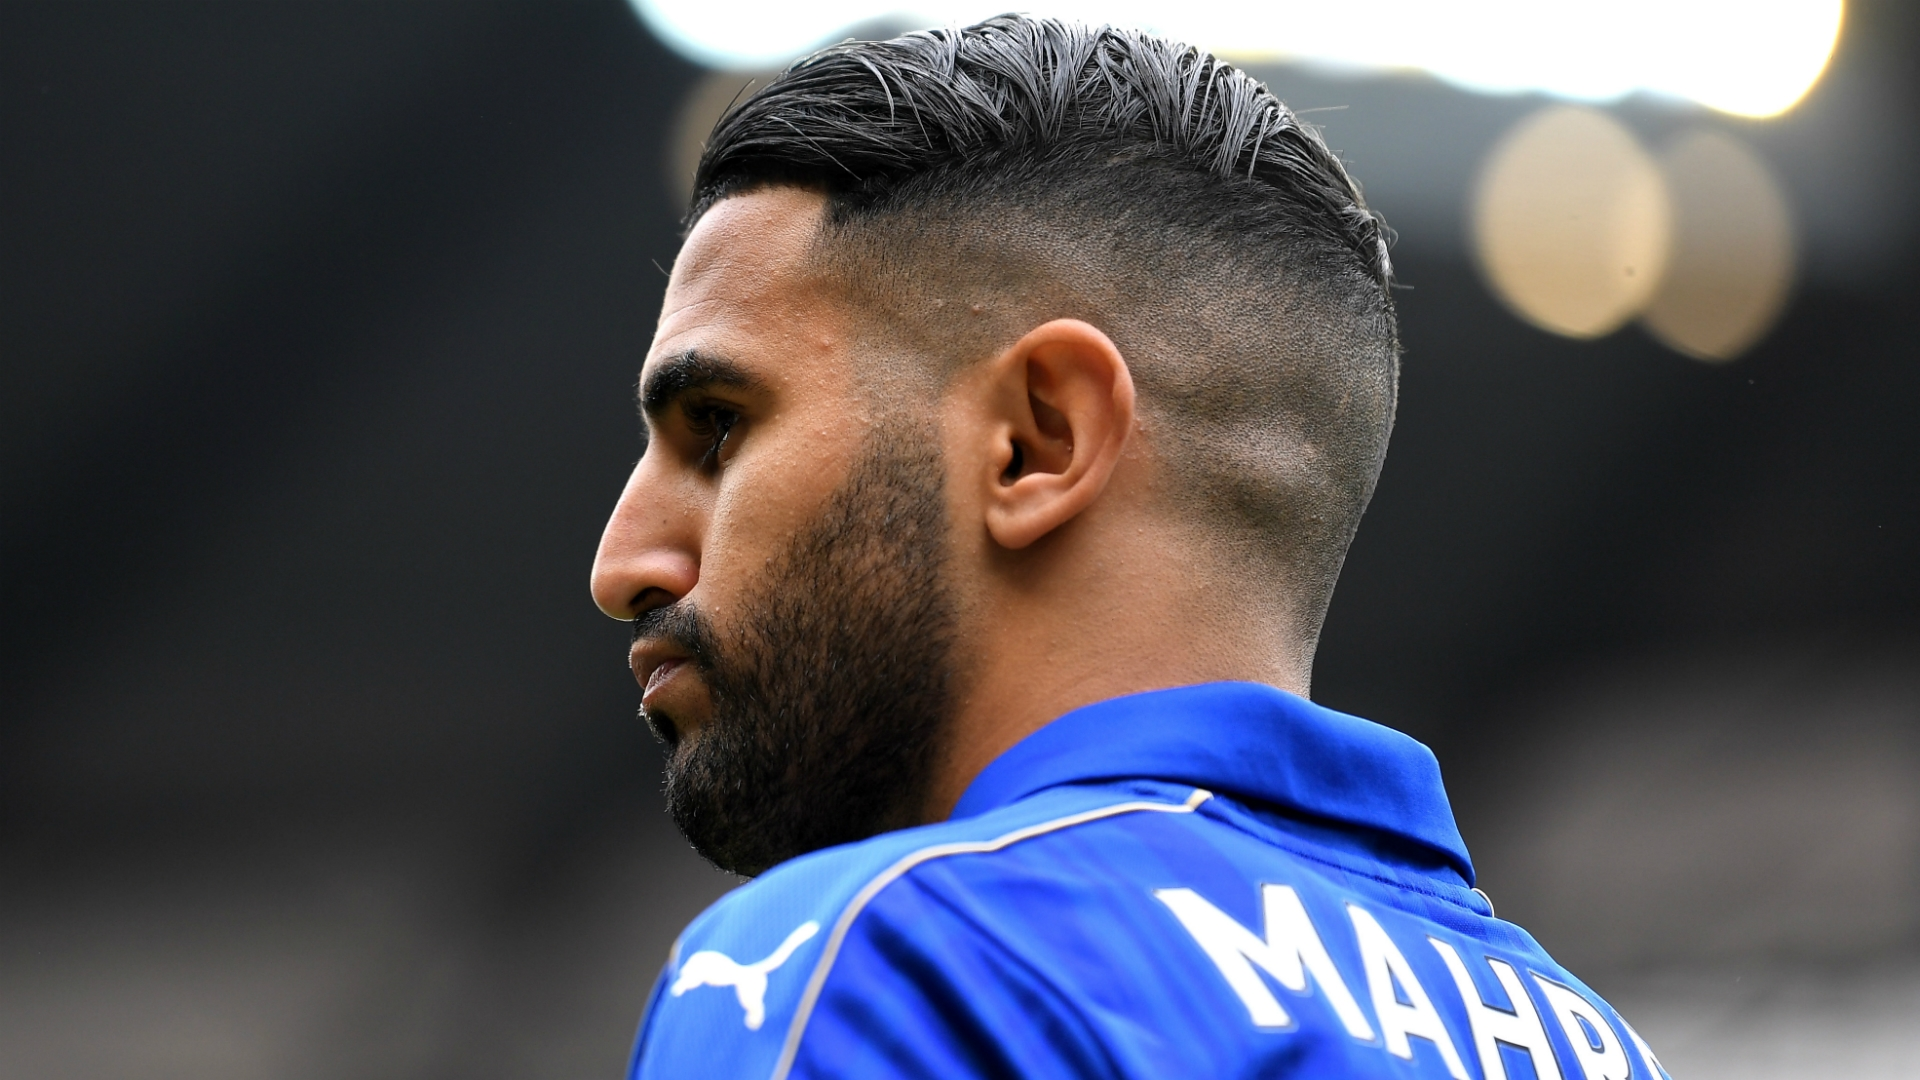 When we last covered the topic ofMahrez wanting to leave Leicester City for a different club, preferably one engaged in European competitions, the team's reps had informed the press that no offers were yet on the table for the player.